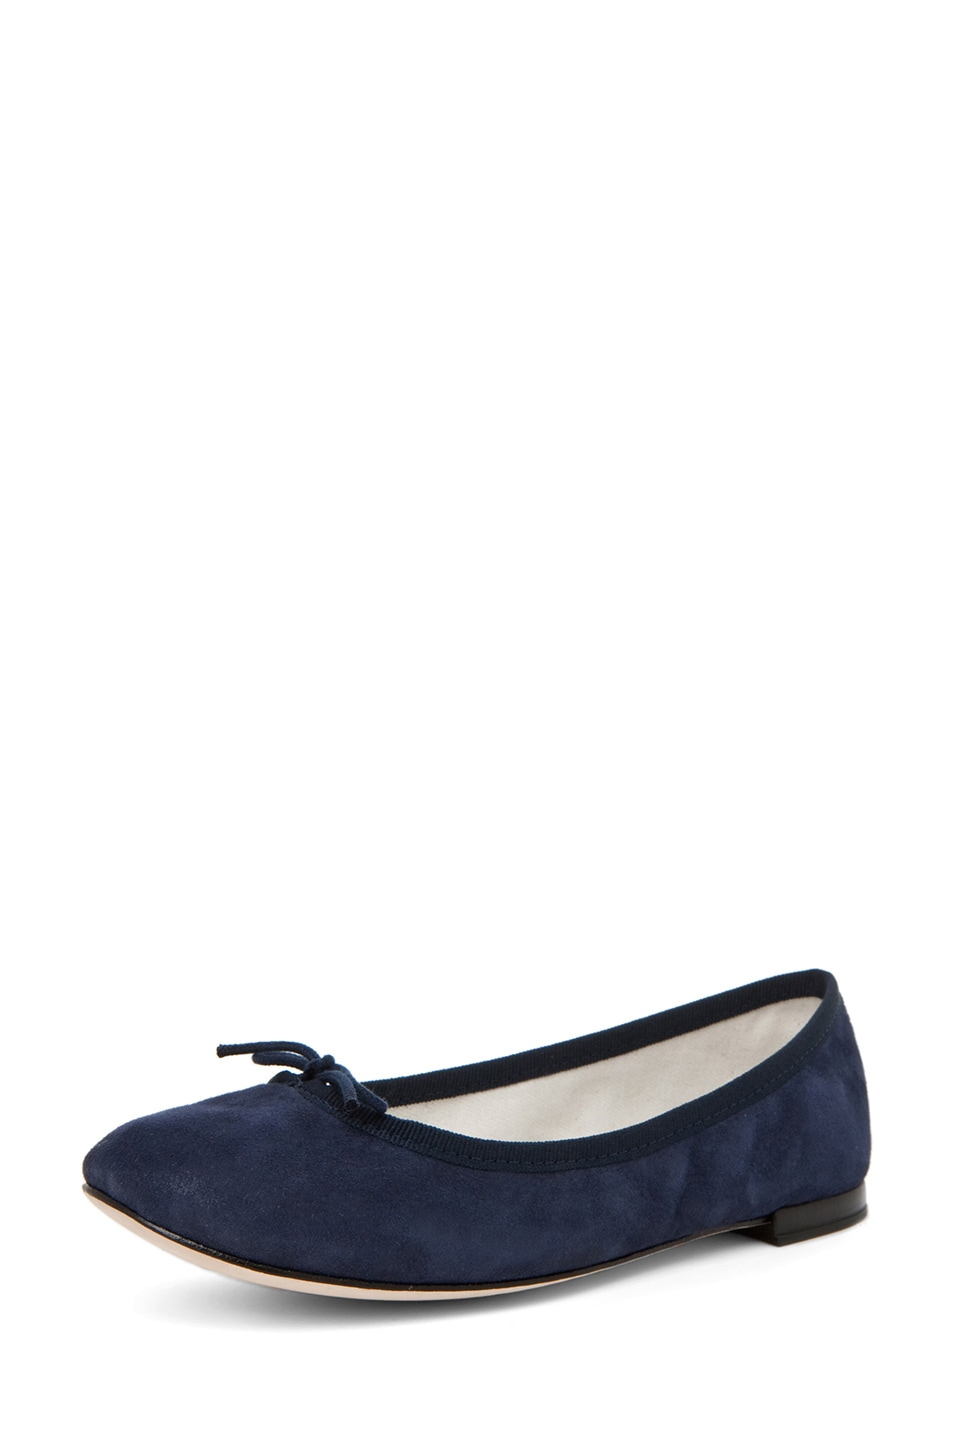 Image 2 of Repetto Suede Flat in Navy